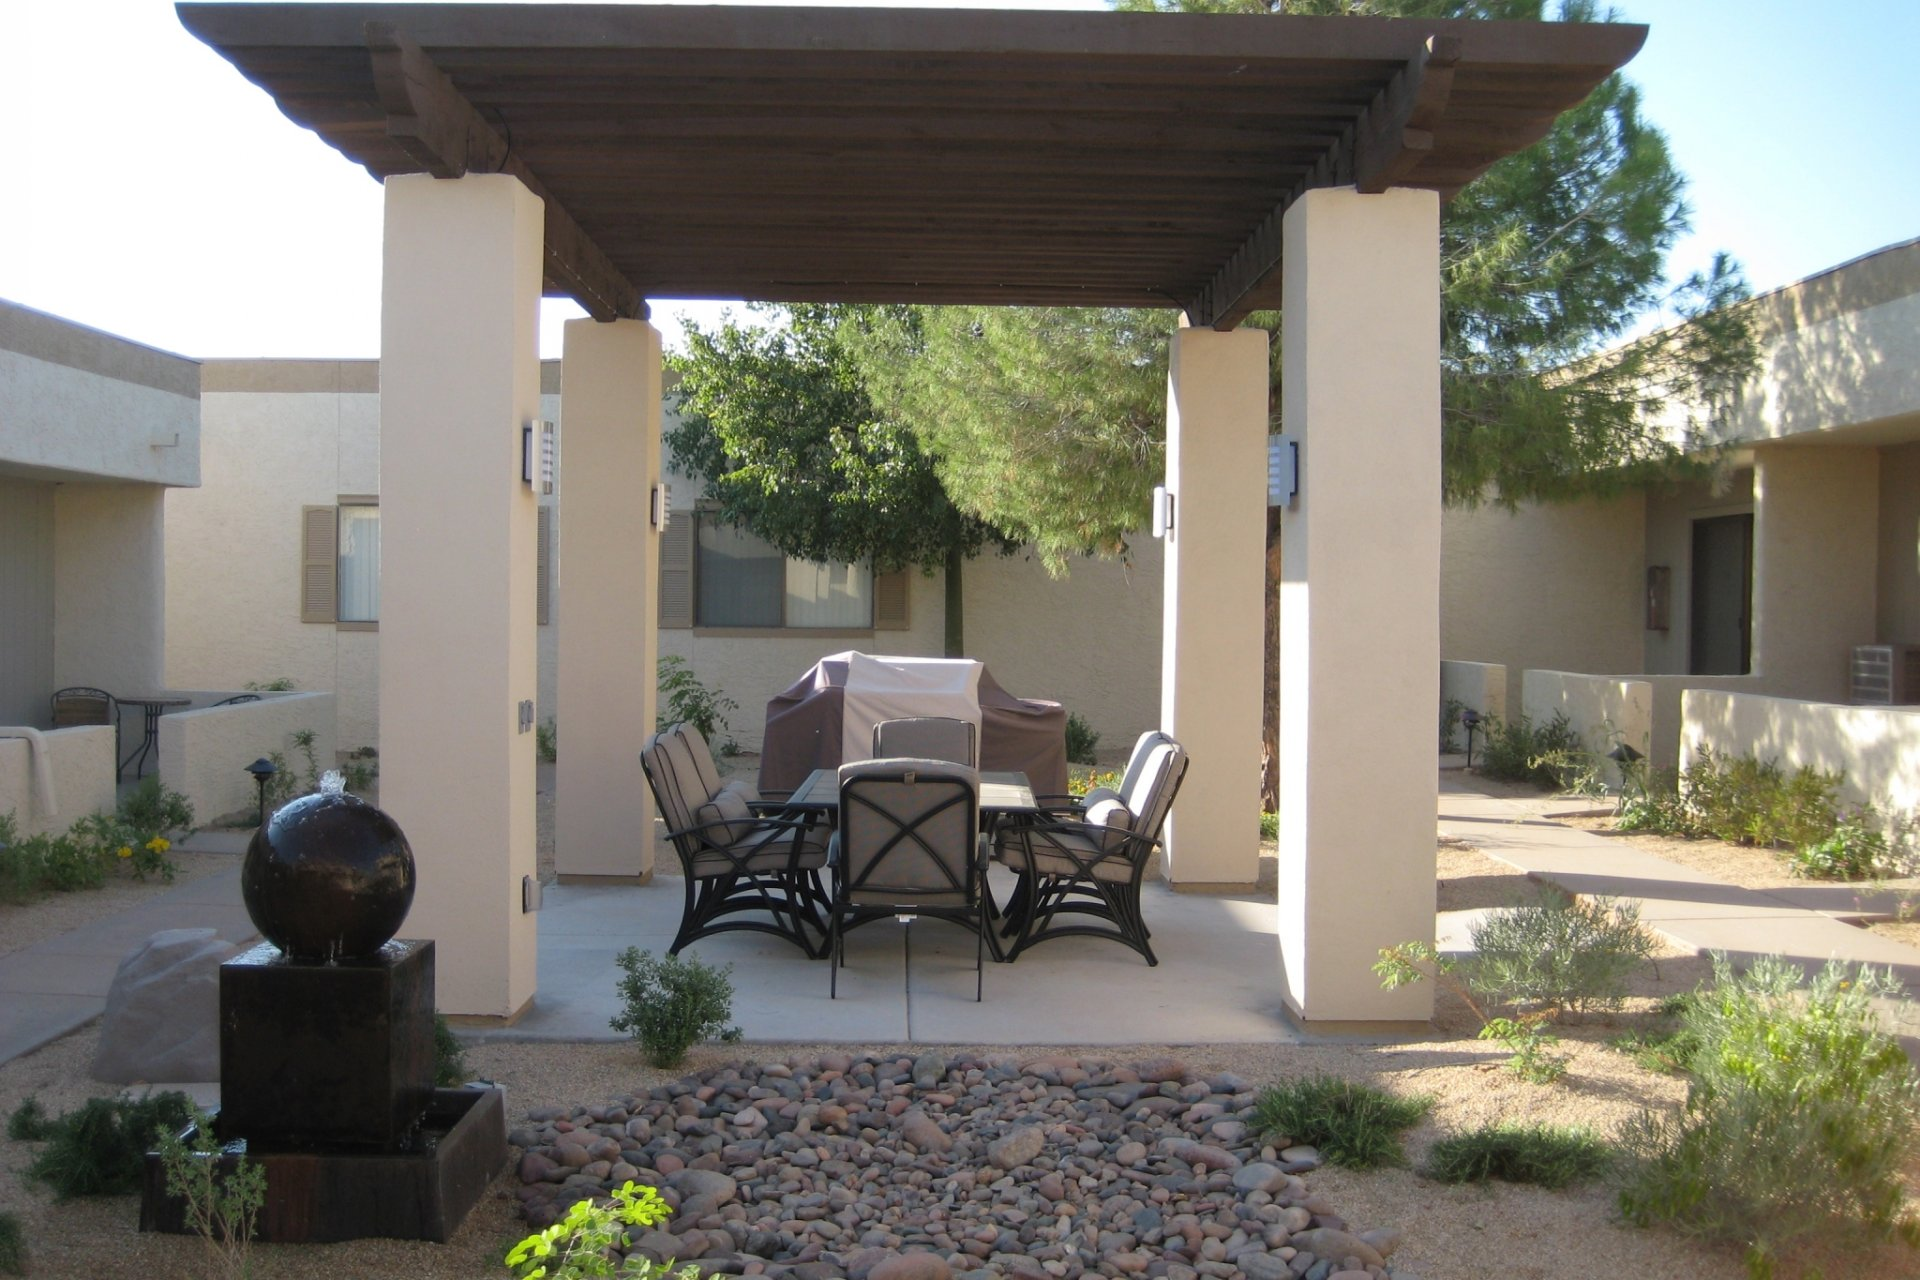 SunVilla Apartments Mesa, AZ BBQ and Ramada